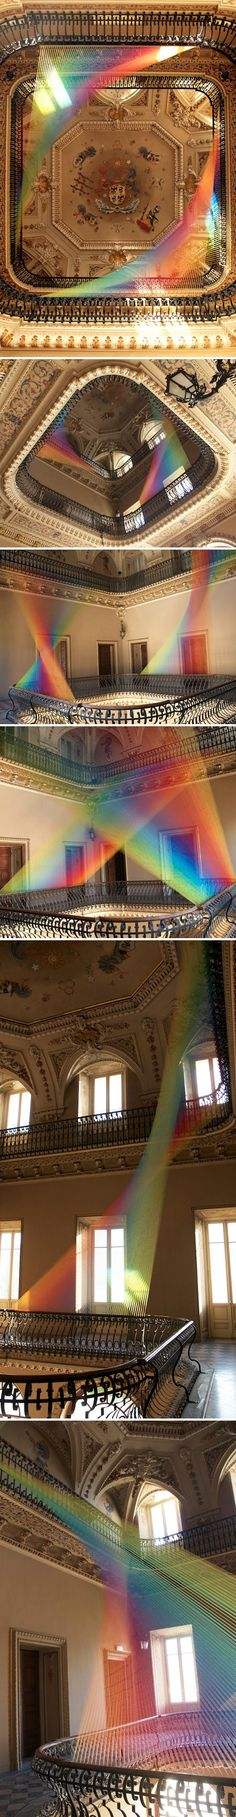 Rainbows in a stairwell